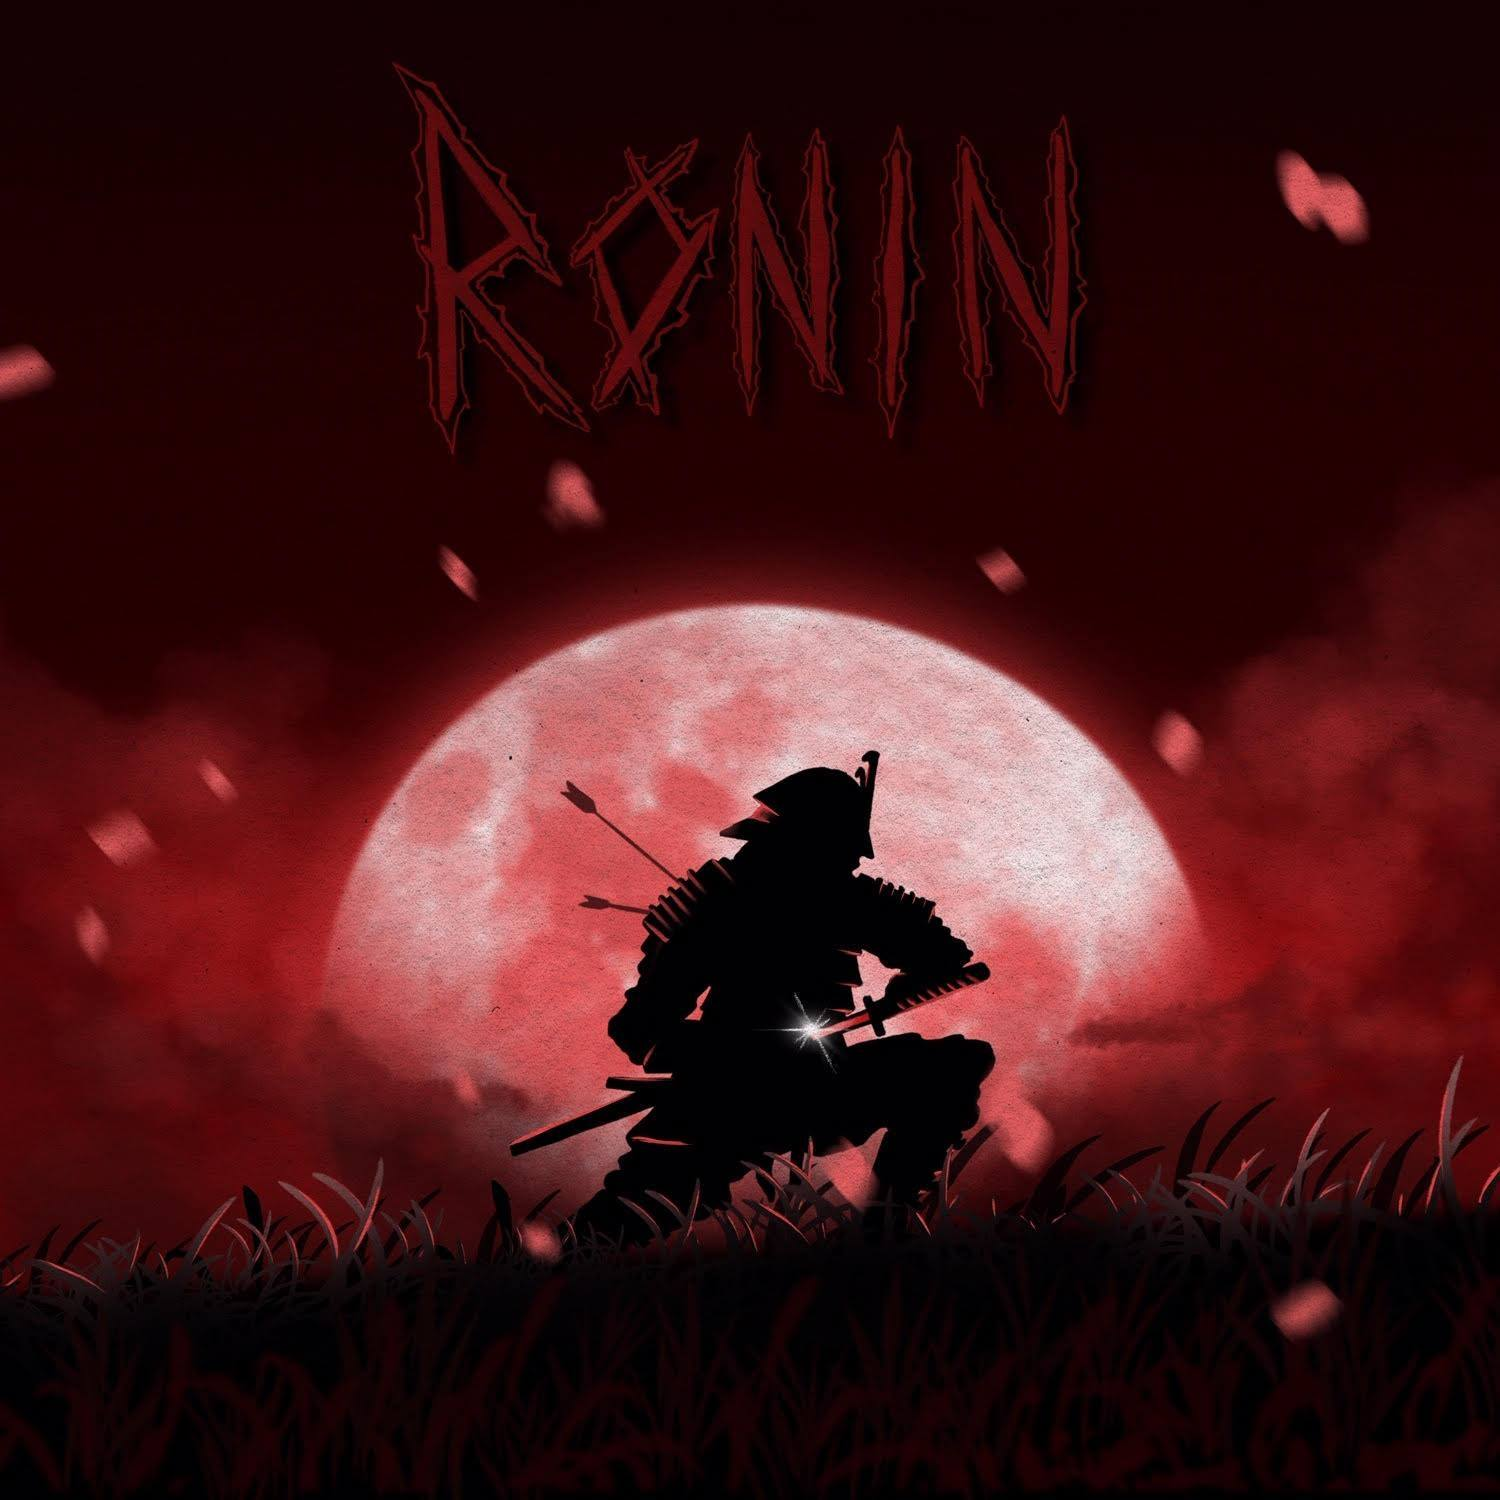 Reseña – review: Ronin disco homónimo